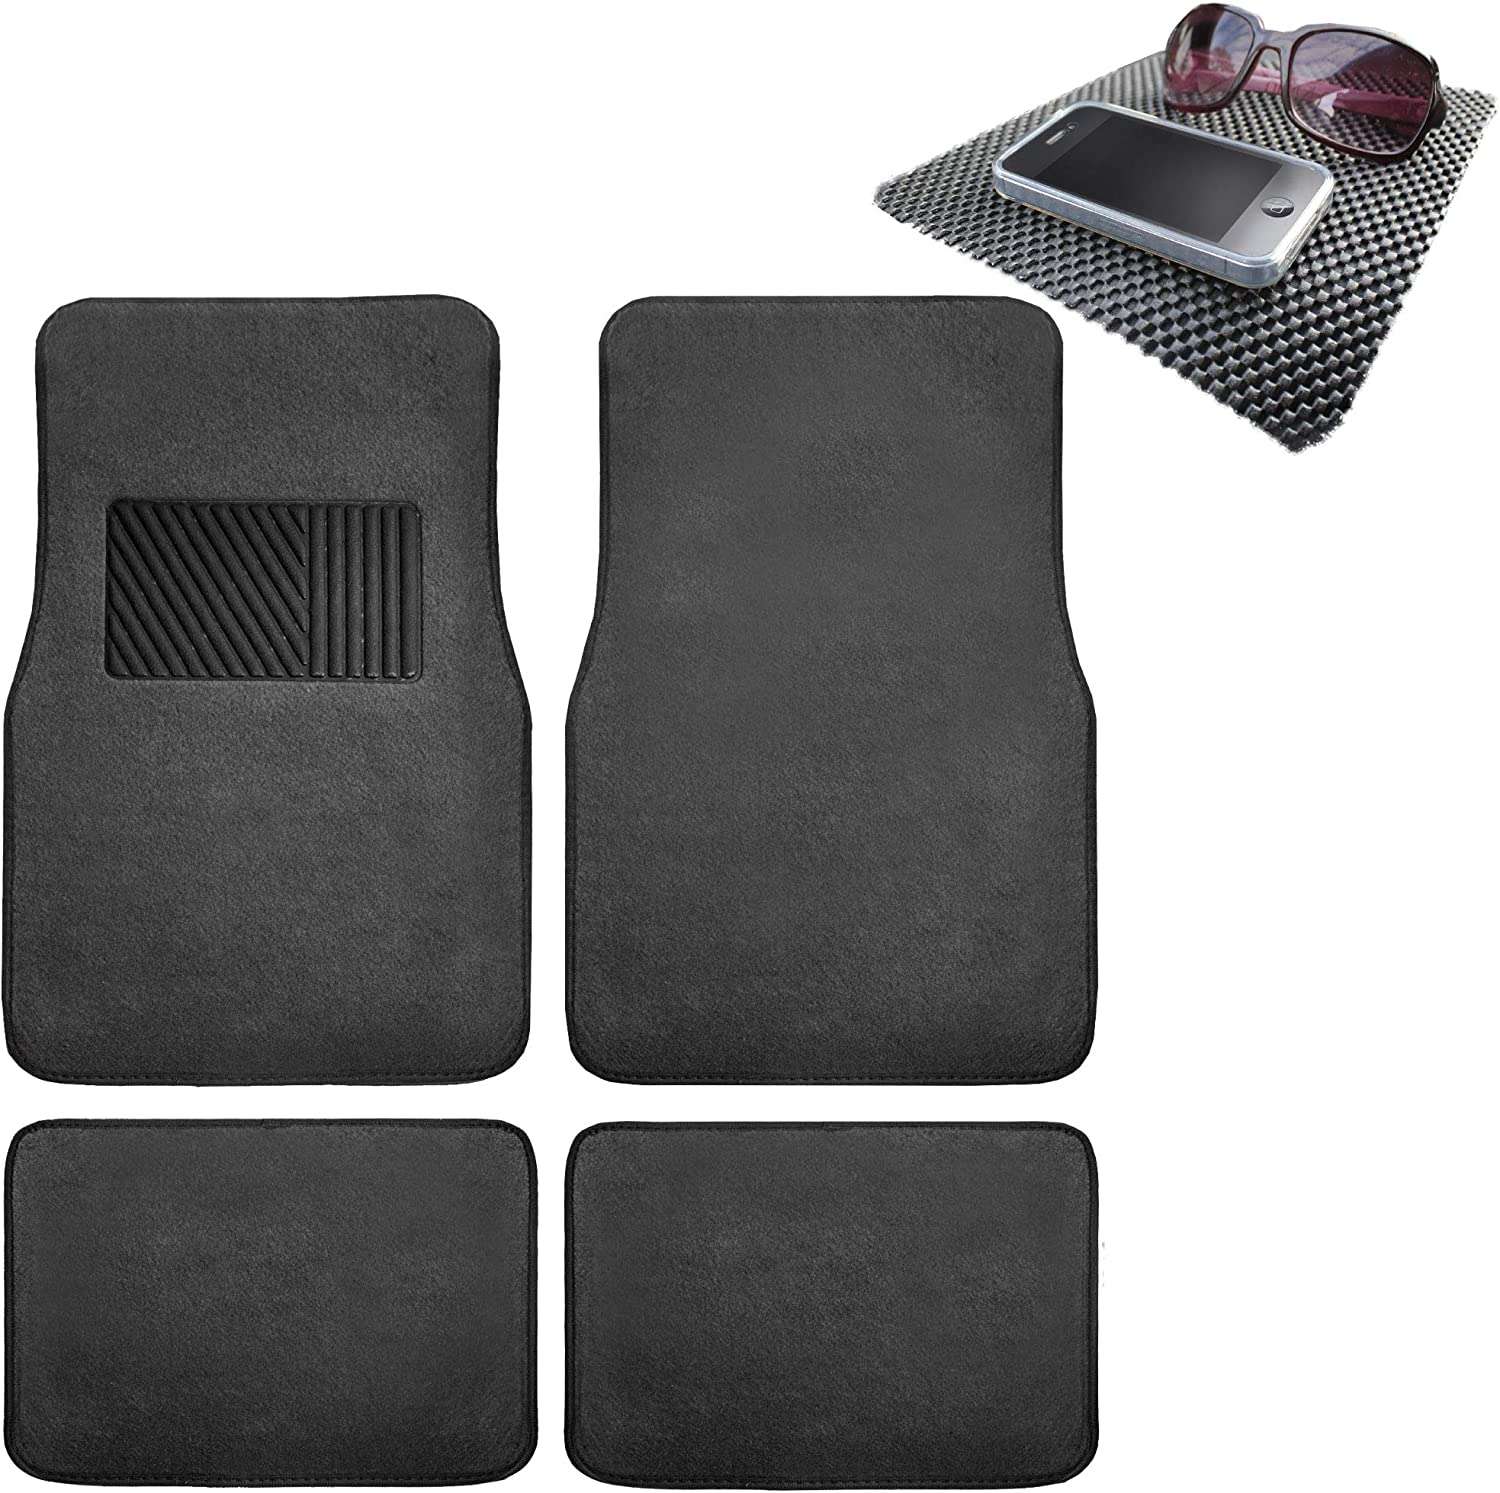 TLH Carpet Car Floor Mats Univesal Fit with Heel Pad, Black Color w/Black Dash Pad